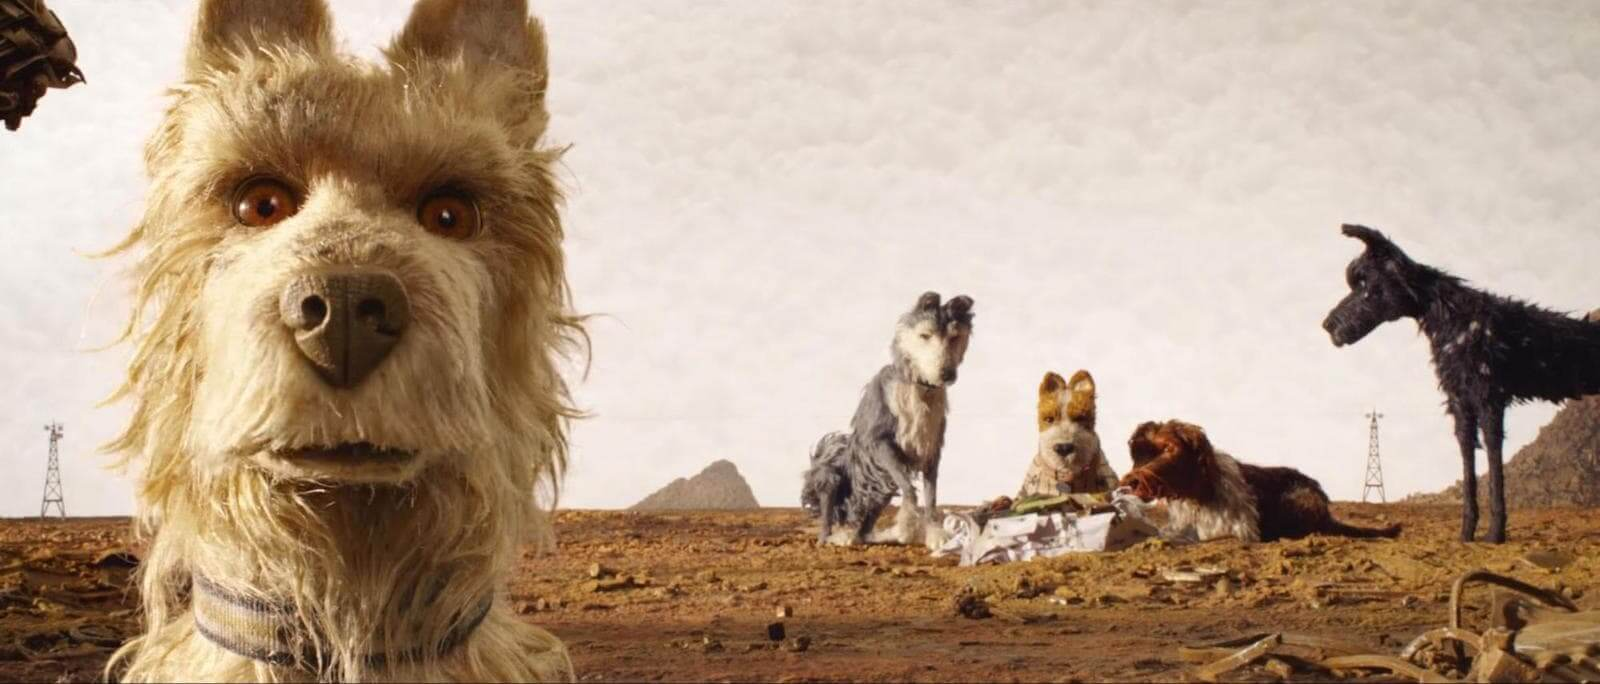 Mise En Scene Film Elements Isle of Dogs StudioBinder